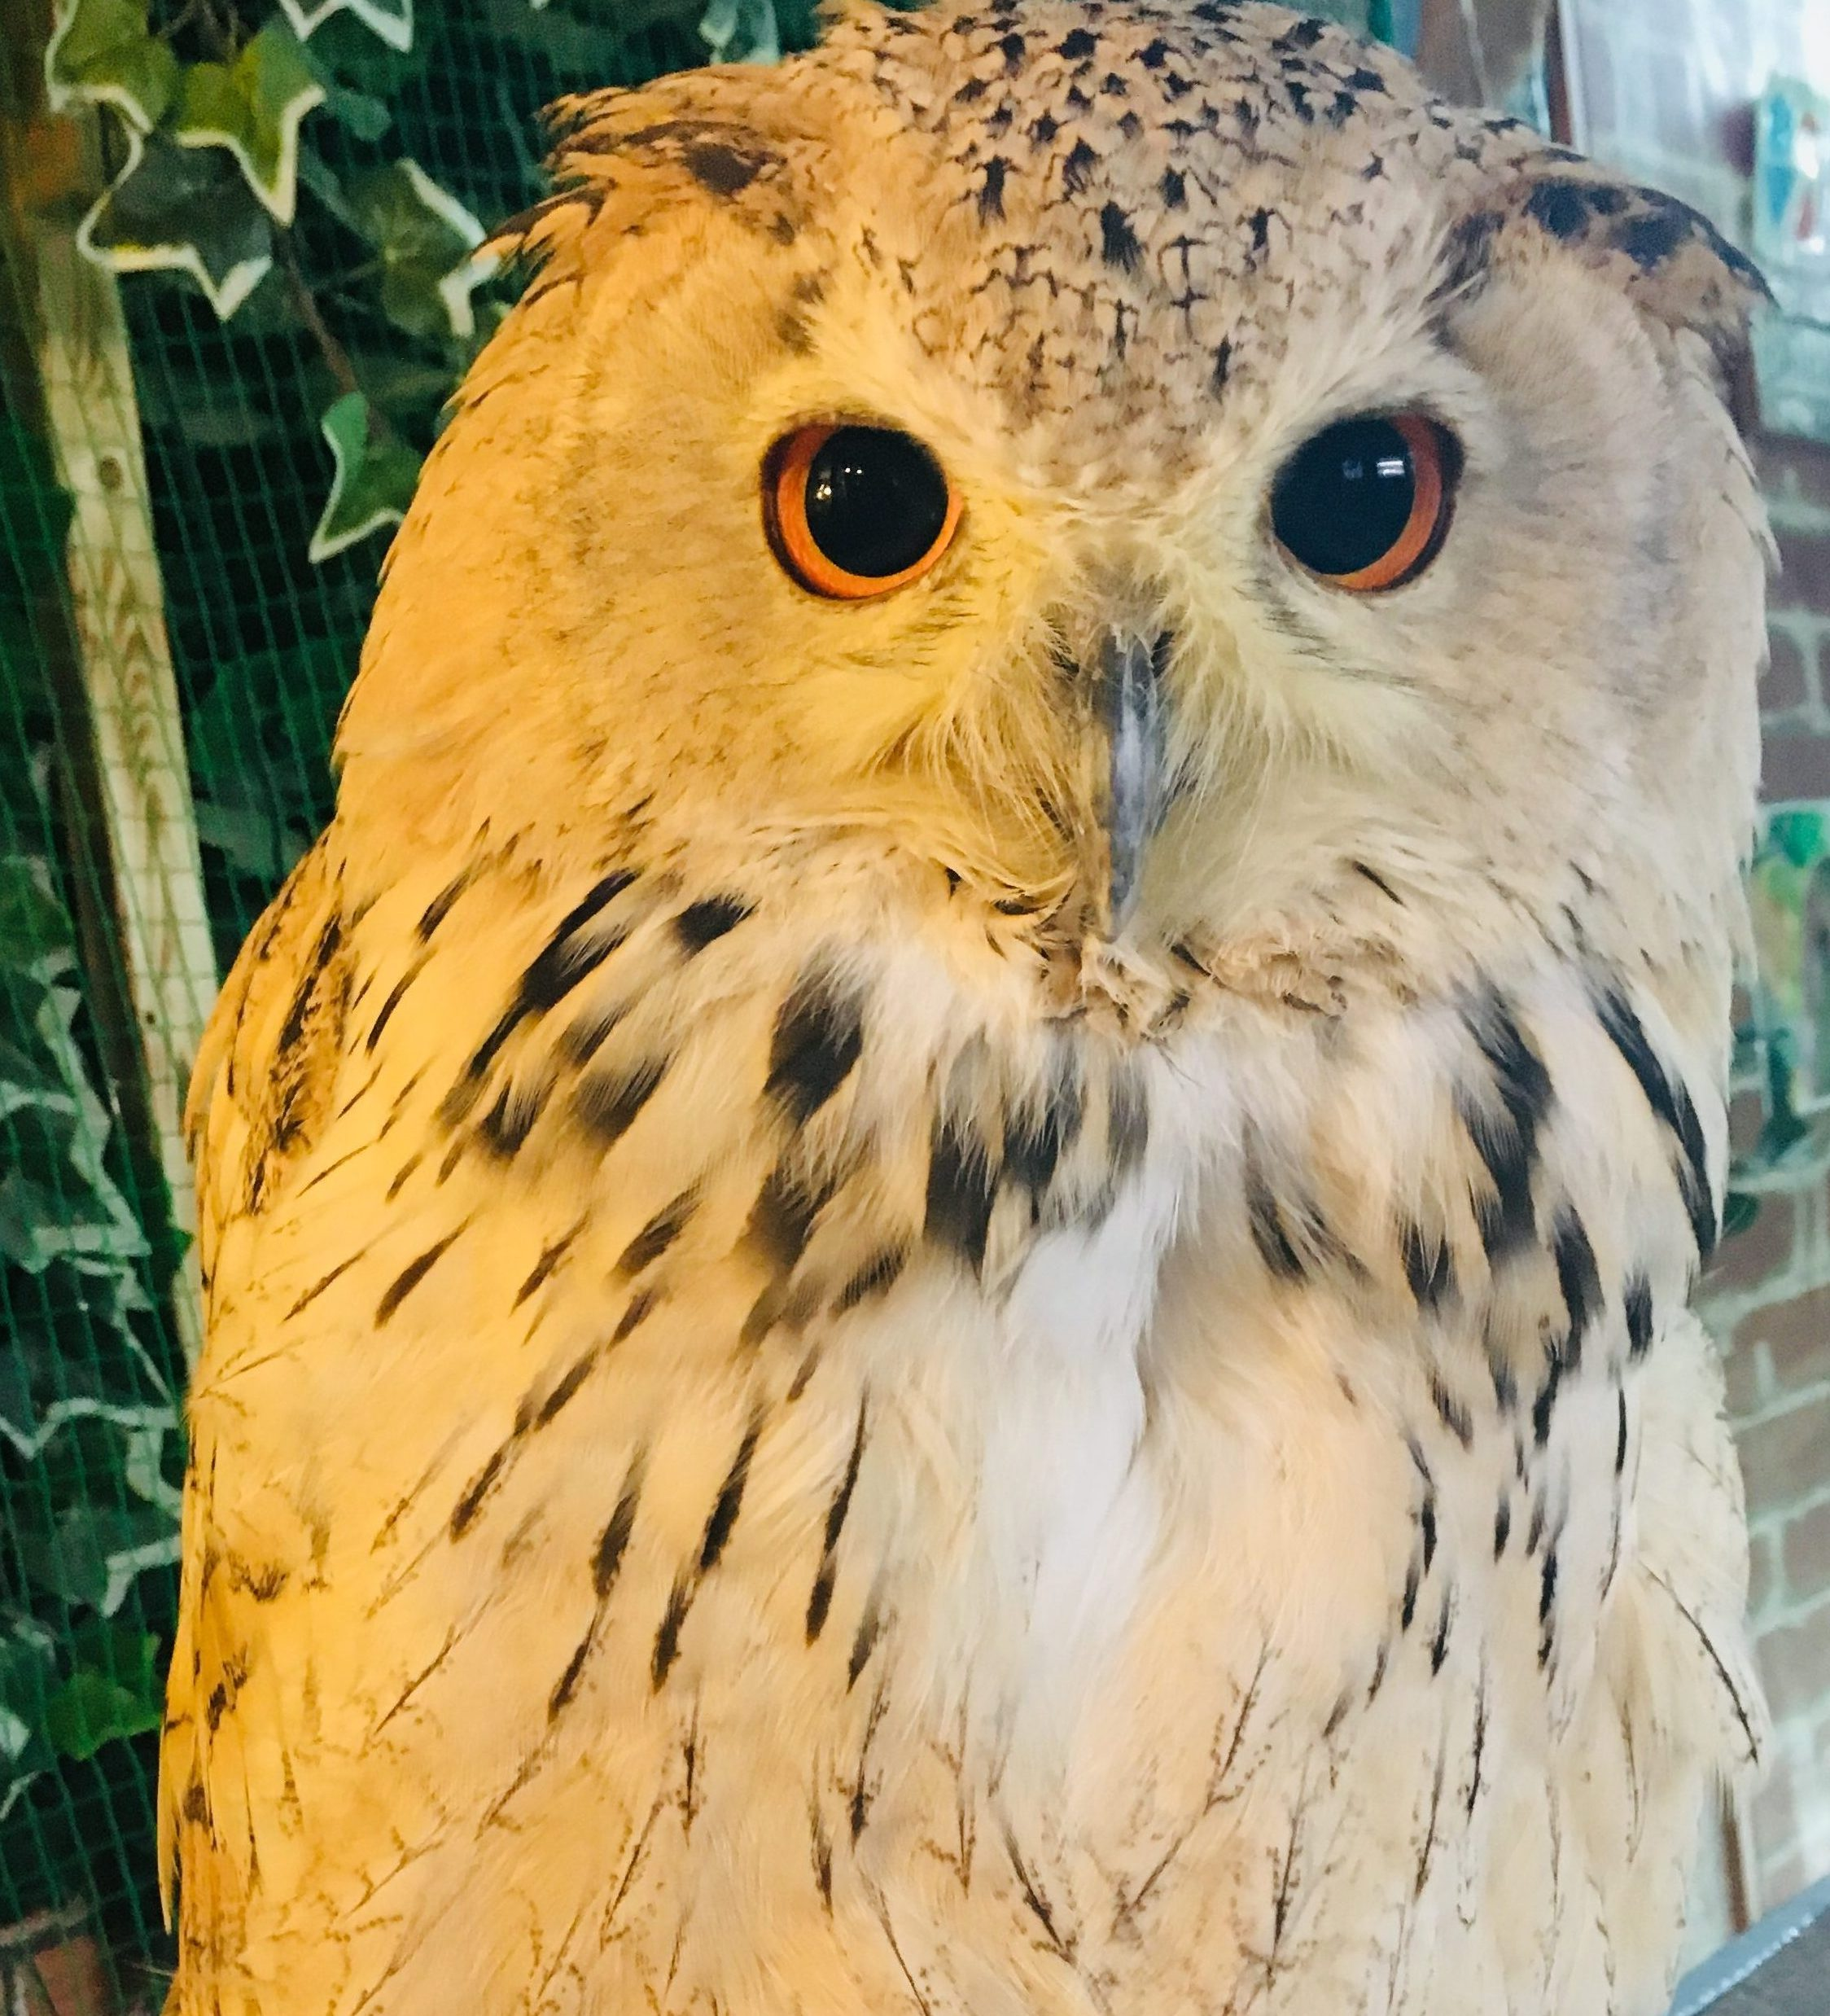 owl in an animal cafe in Japan